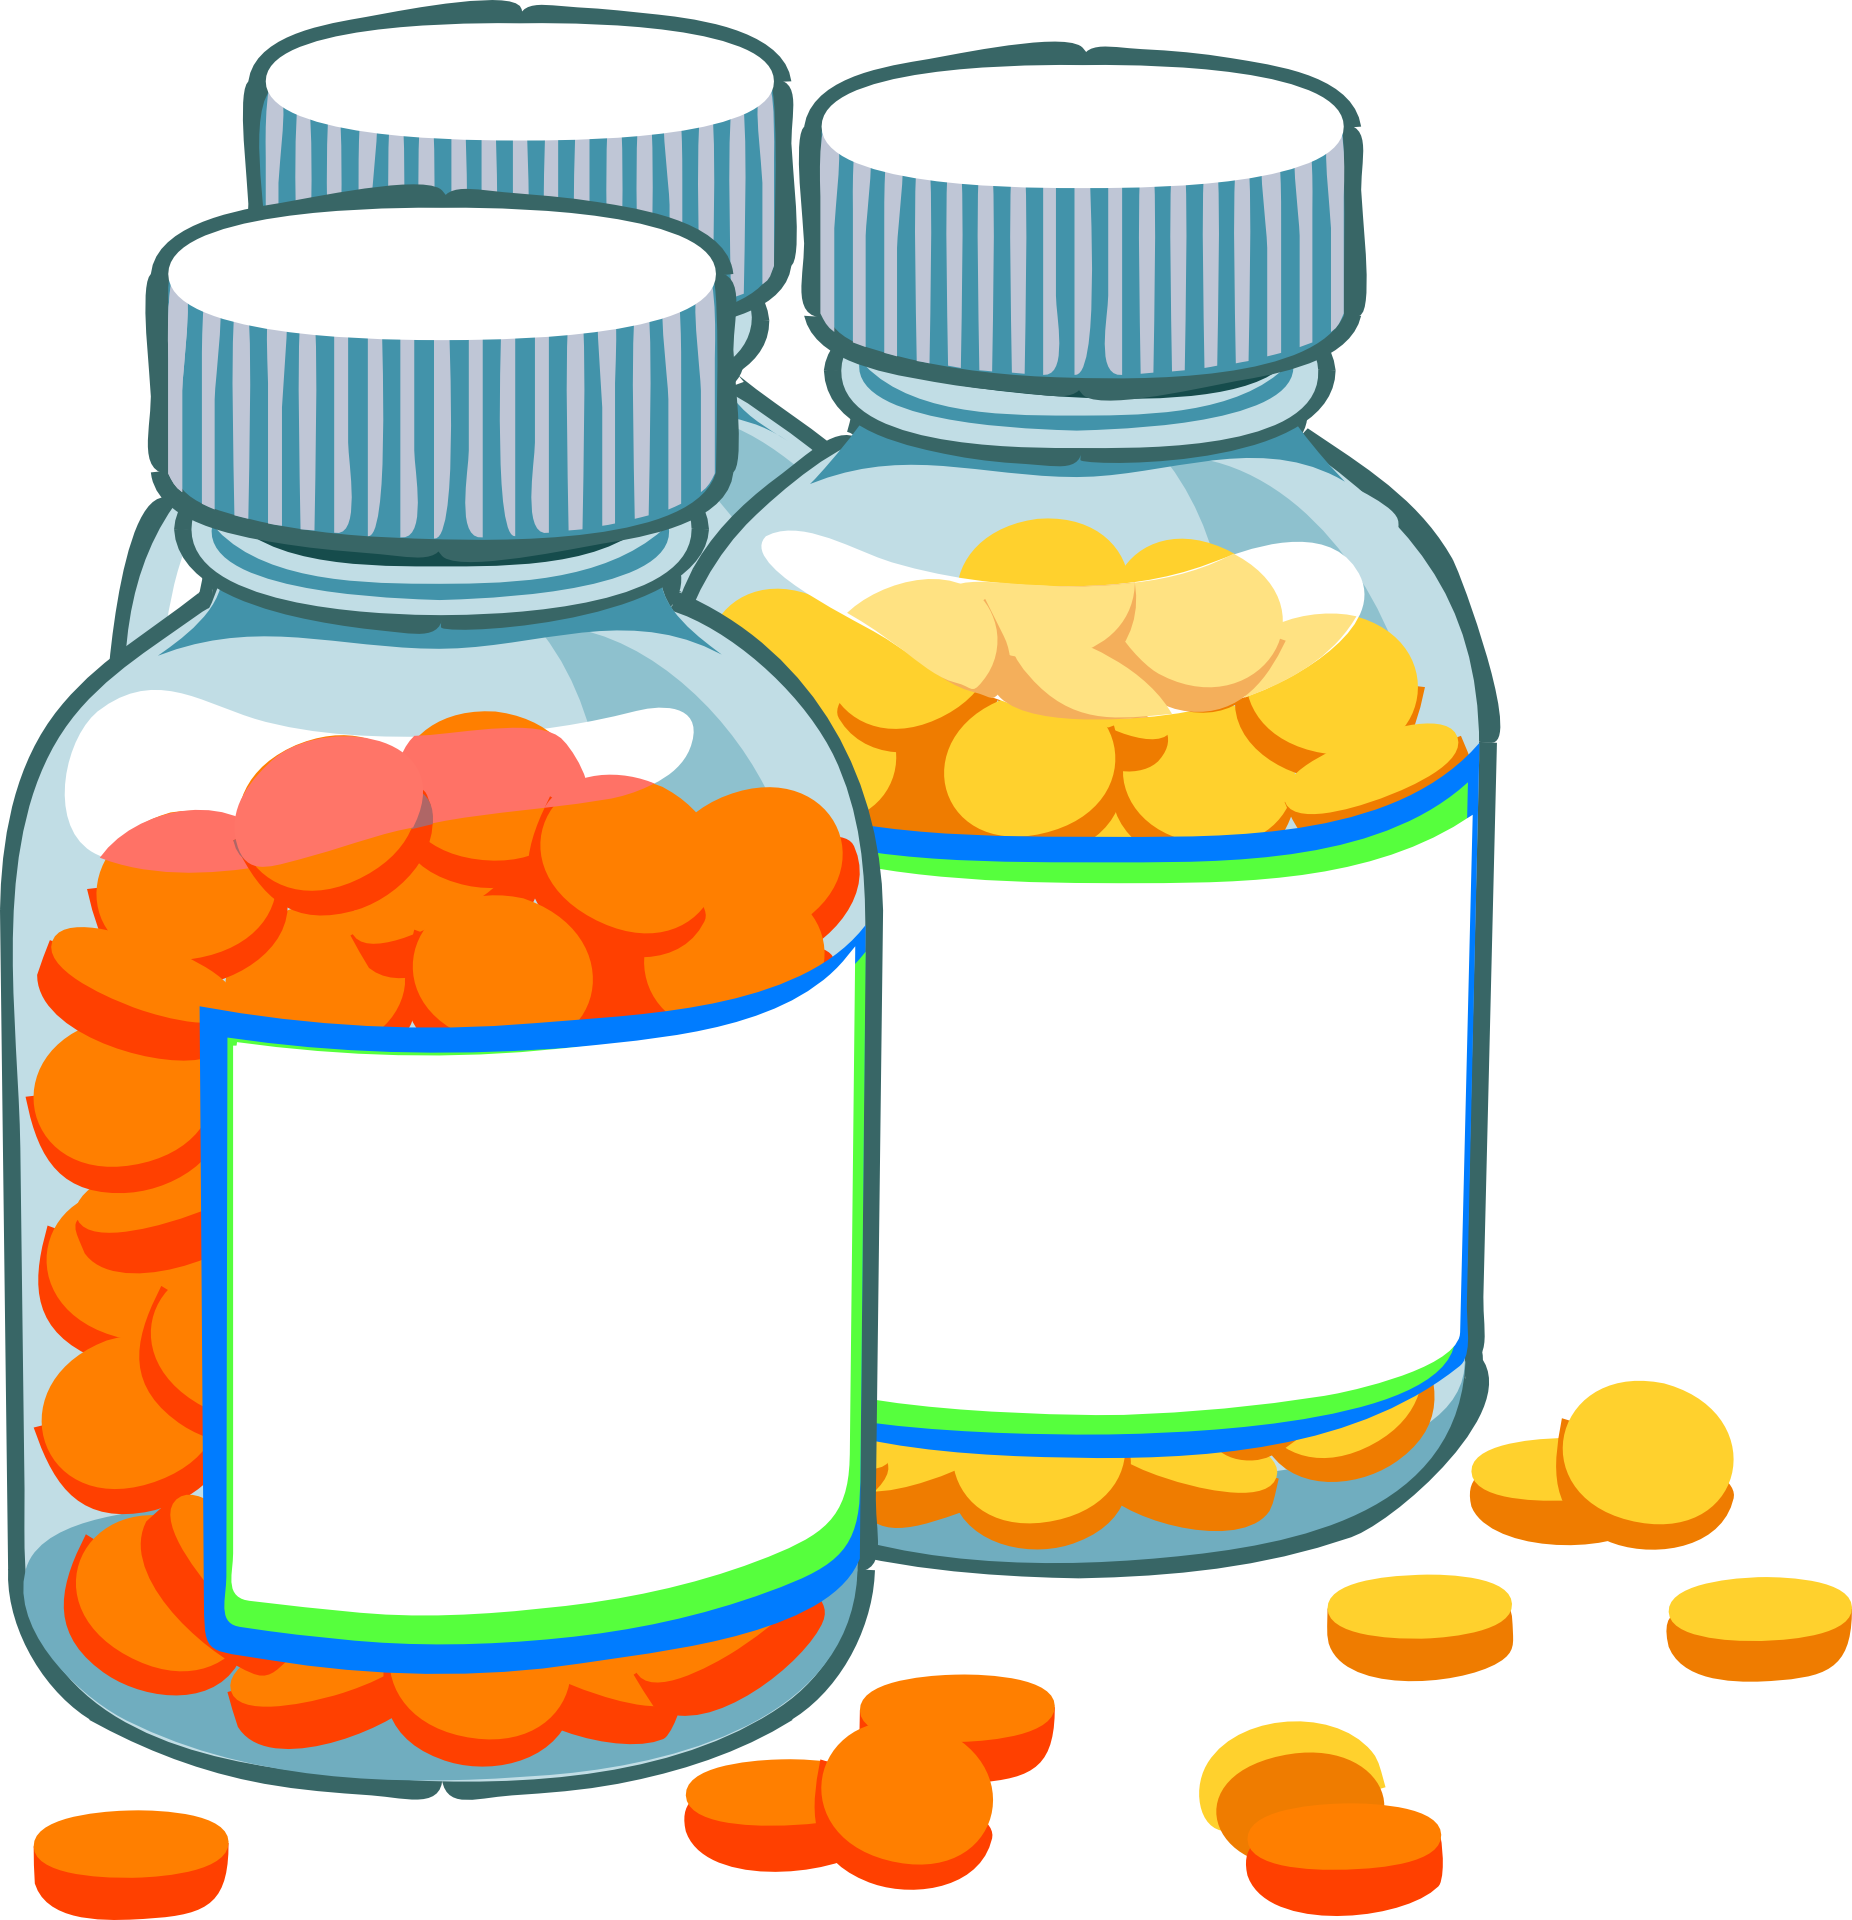 Pill clipart drug profile. Life insurance after abuse